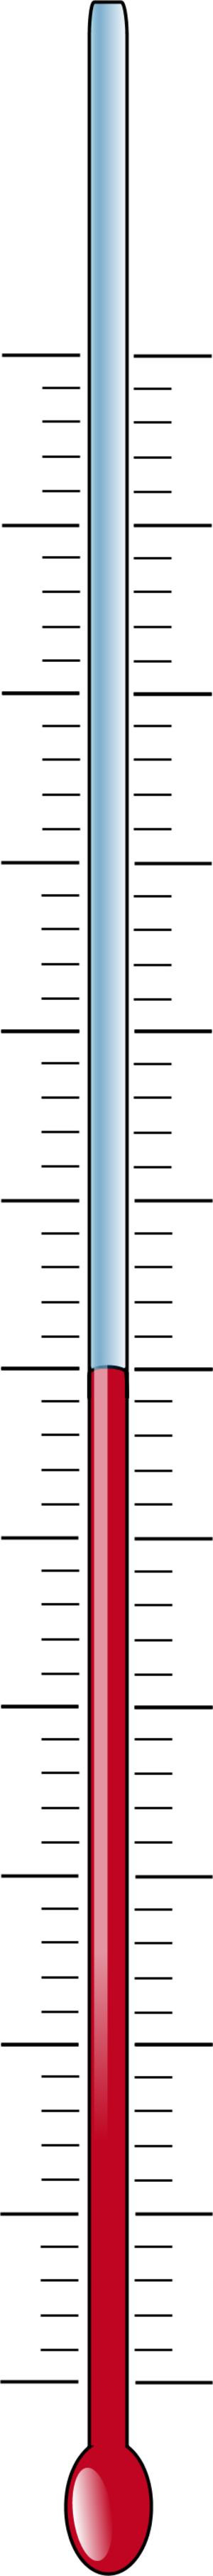 300x3627 Printable Fundraising Thermometer Clipart 4